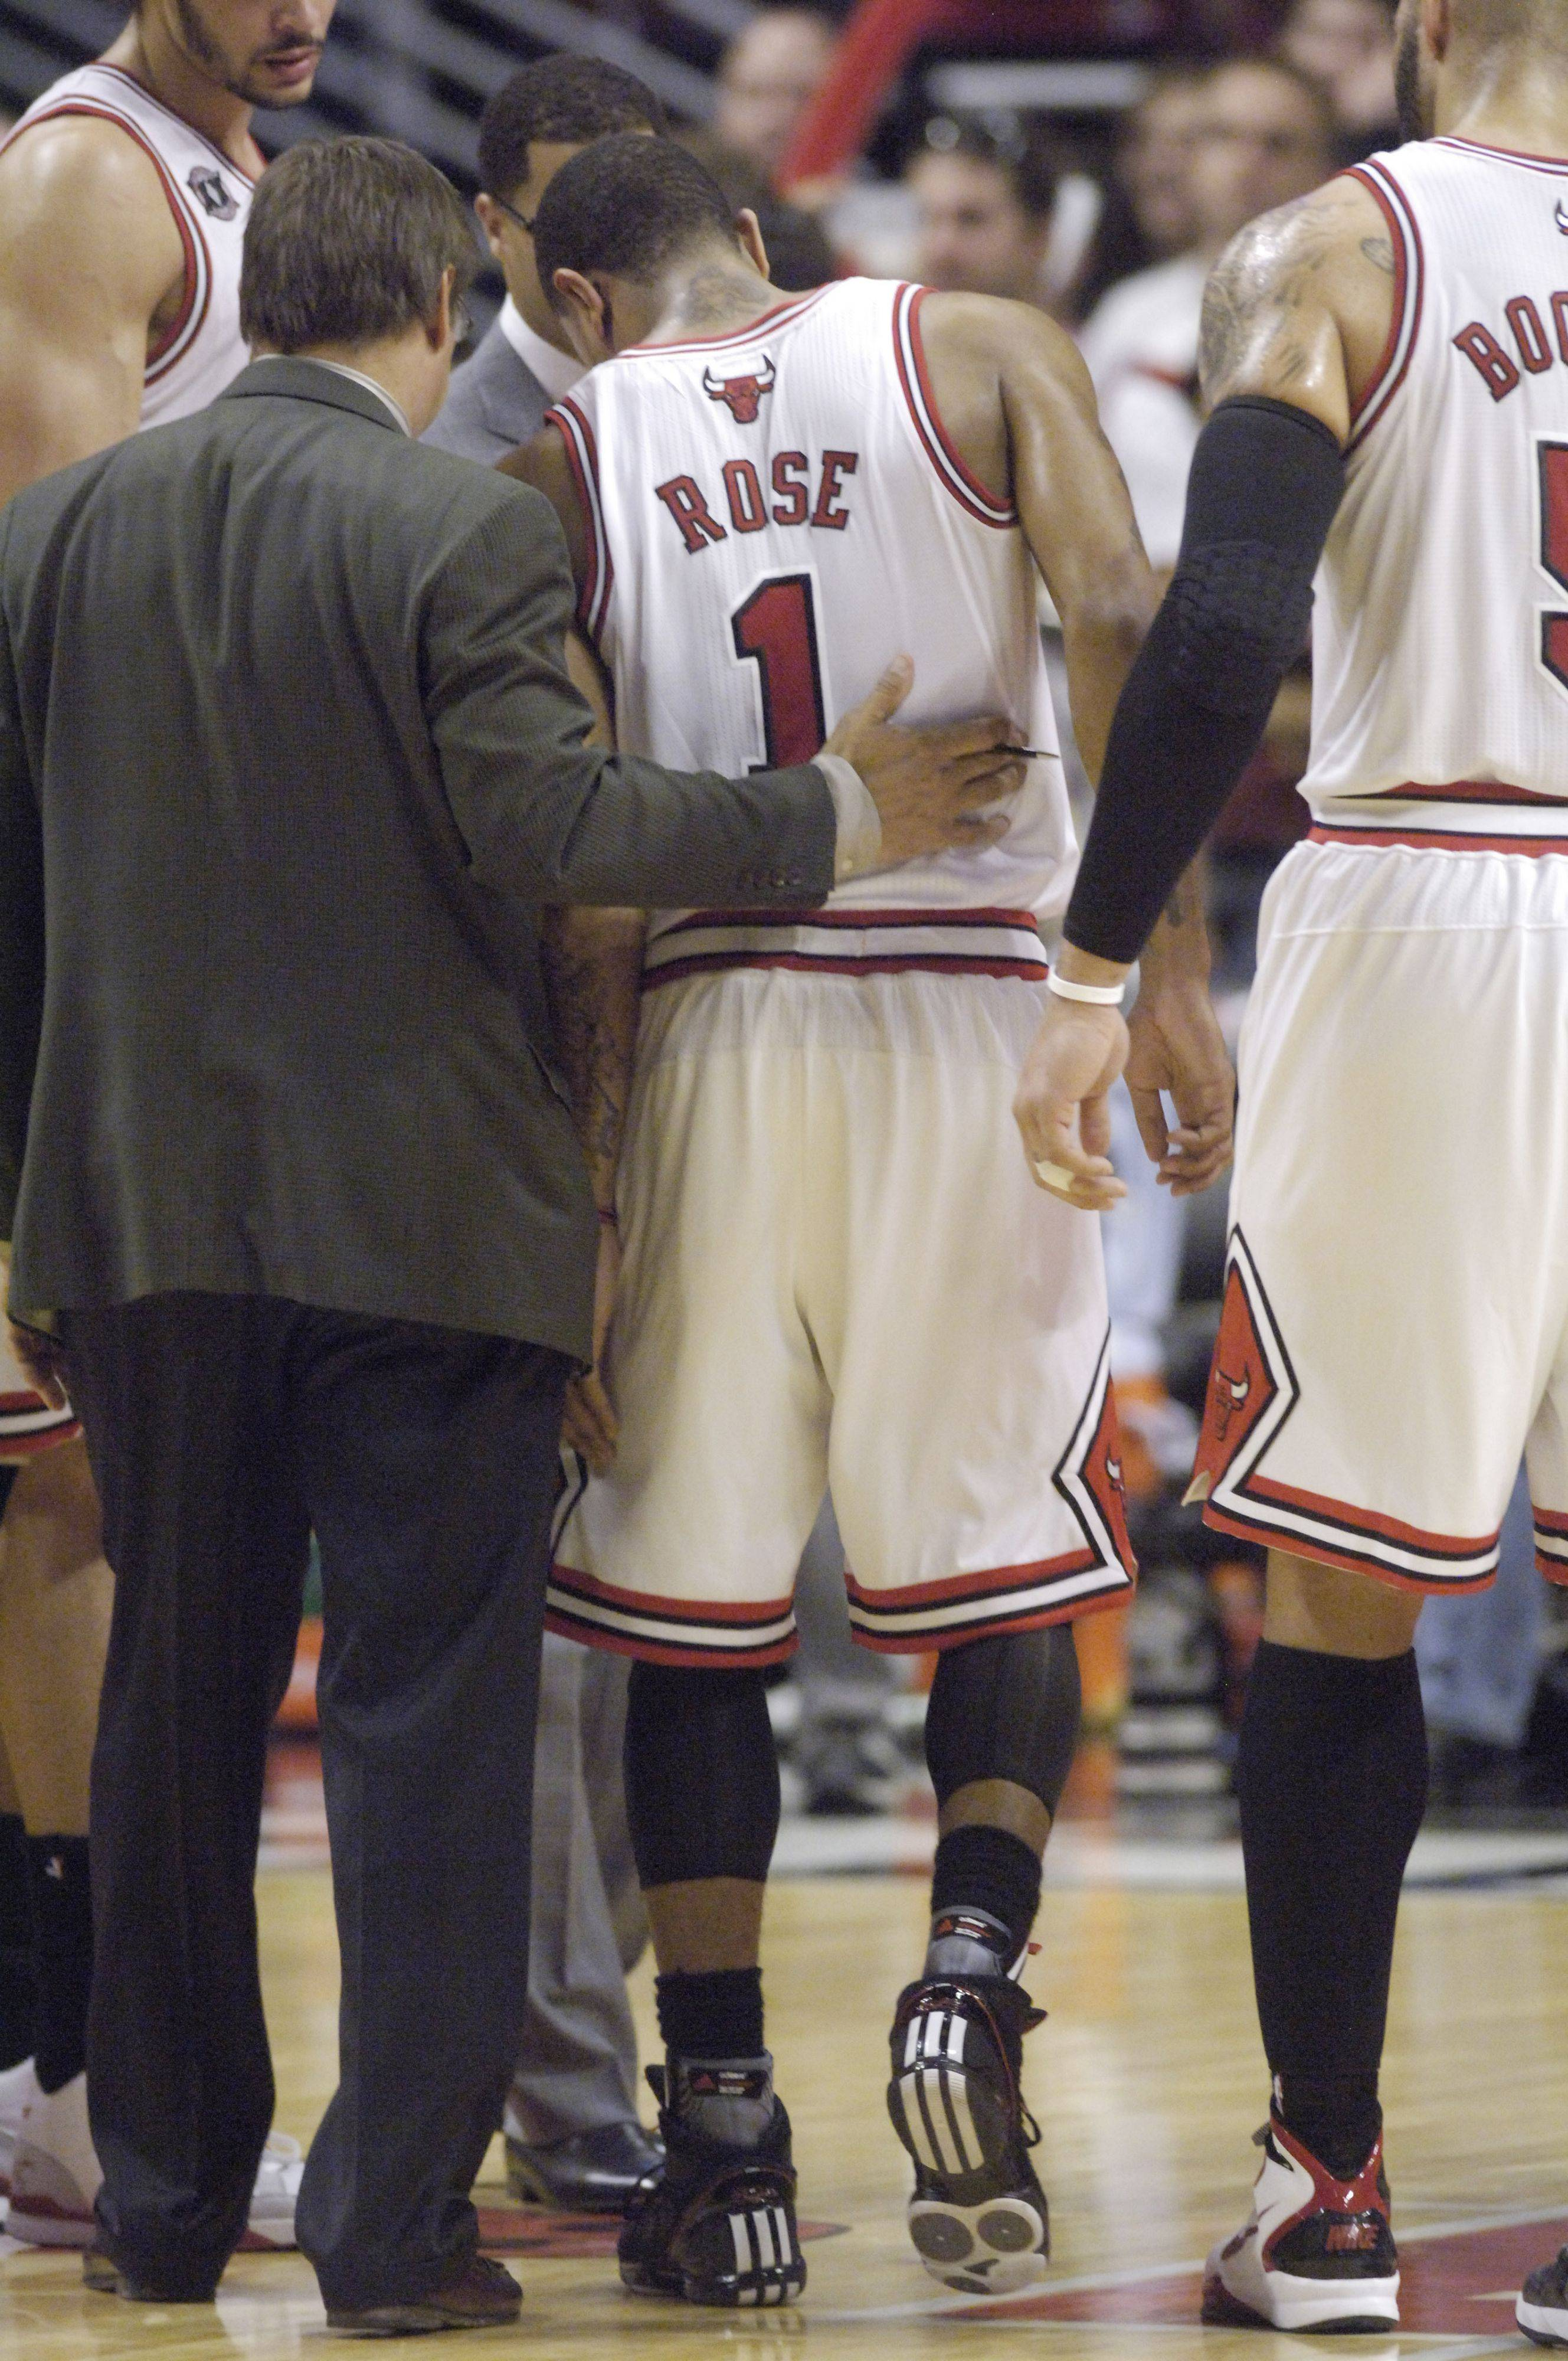 Derrick Rose limps off the court after Monday's game at the United Center.